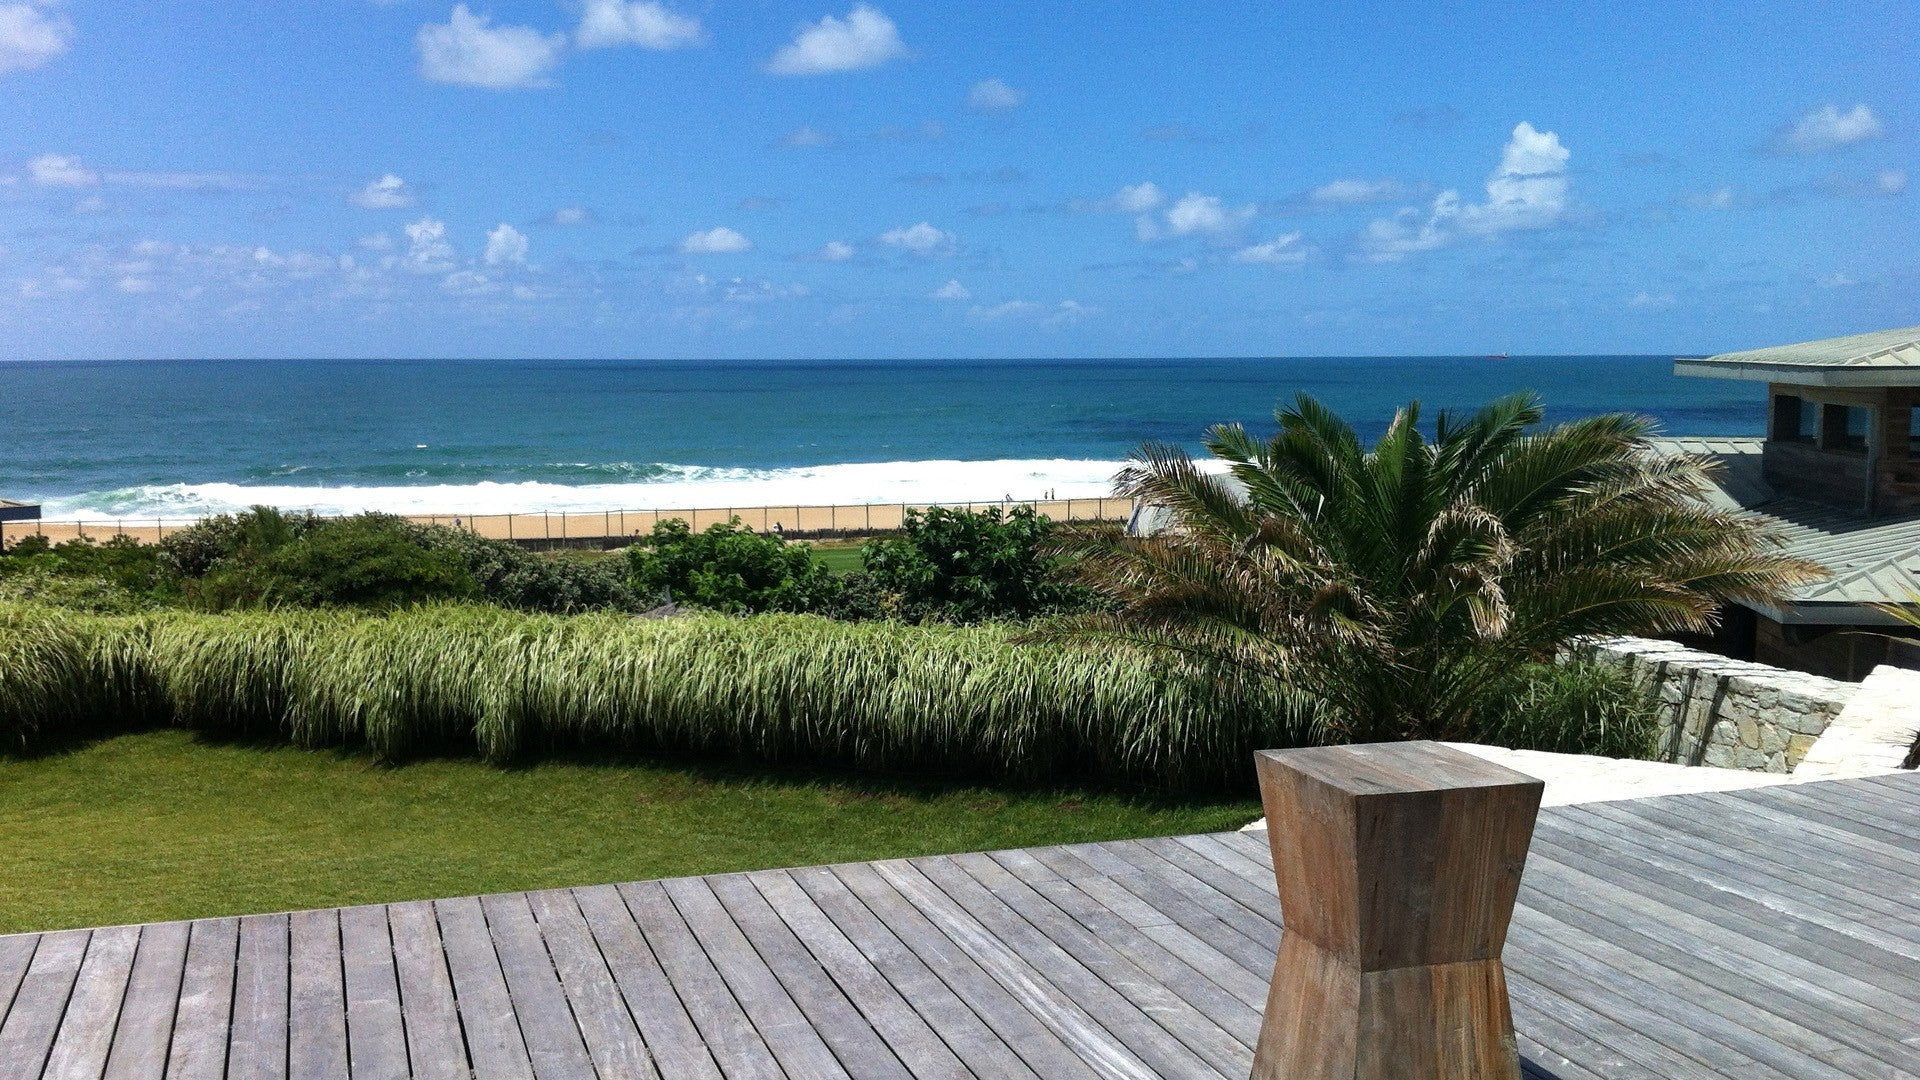 "Photos & Videos <i class=""fa fa-youtube-play faa-horizontal animated""></i> - VILLA ATALANTIQUE Anglet, Biarritz, France, Villas near Biarritz, Luxury villas Biarritz, Luxury villas Anglet, Biarritz villa rental, Biarritz villas for rent, Beach house Biarritz, Beachfront Biarritz, Holiday villa Biarritz, VRBO Biarritz, VRBO Anglet, Luxury villas Biarritz France, Rental vacation Biarritz, Holiday house Biarritz, House on the beach Biarritz, House on the beach Anglet, Biarritz beach,"